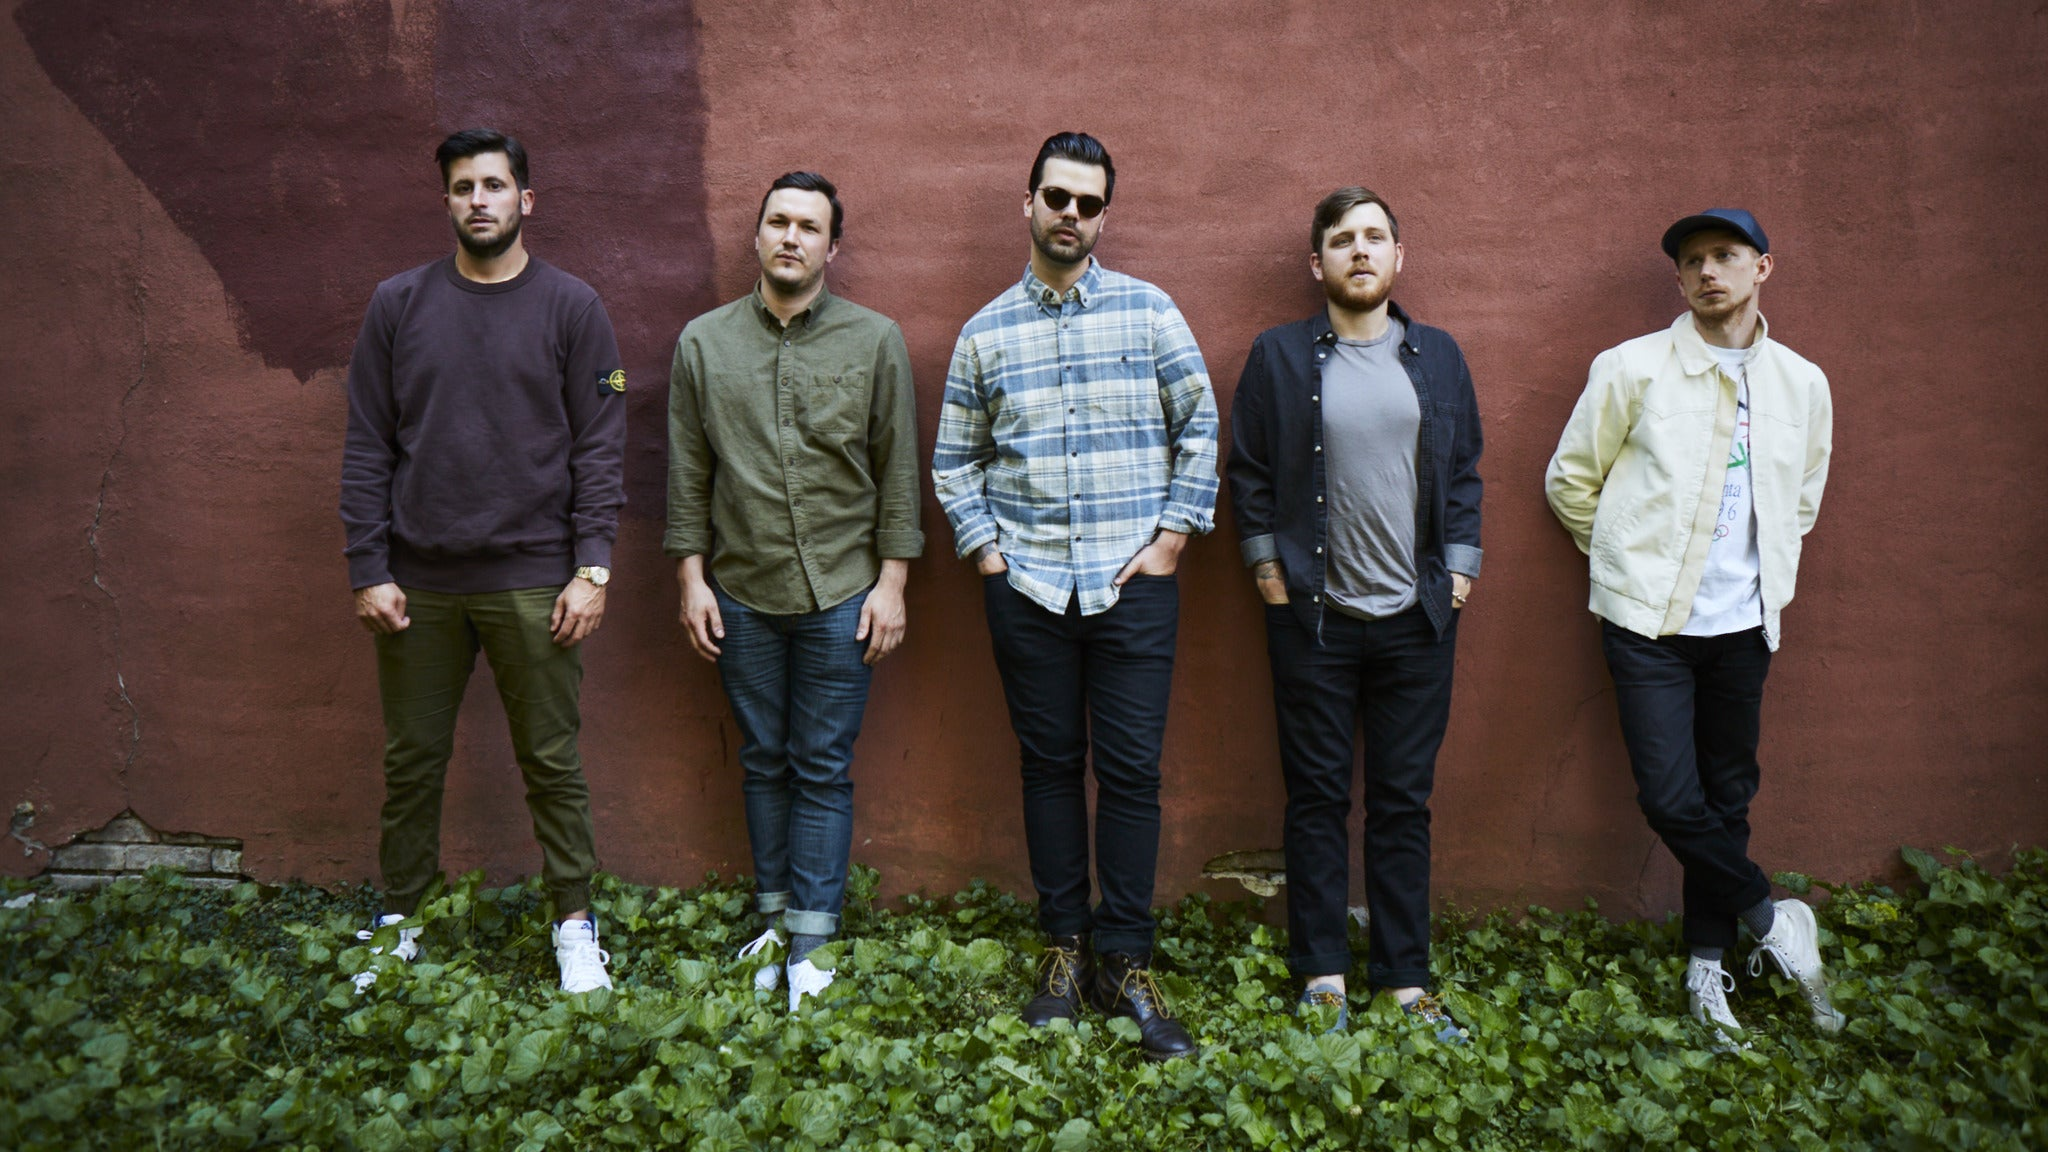 Balance & Composure at Prescott Valley Event Center